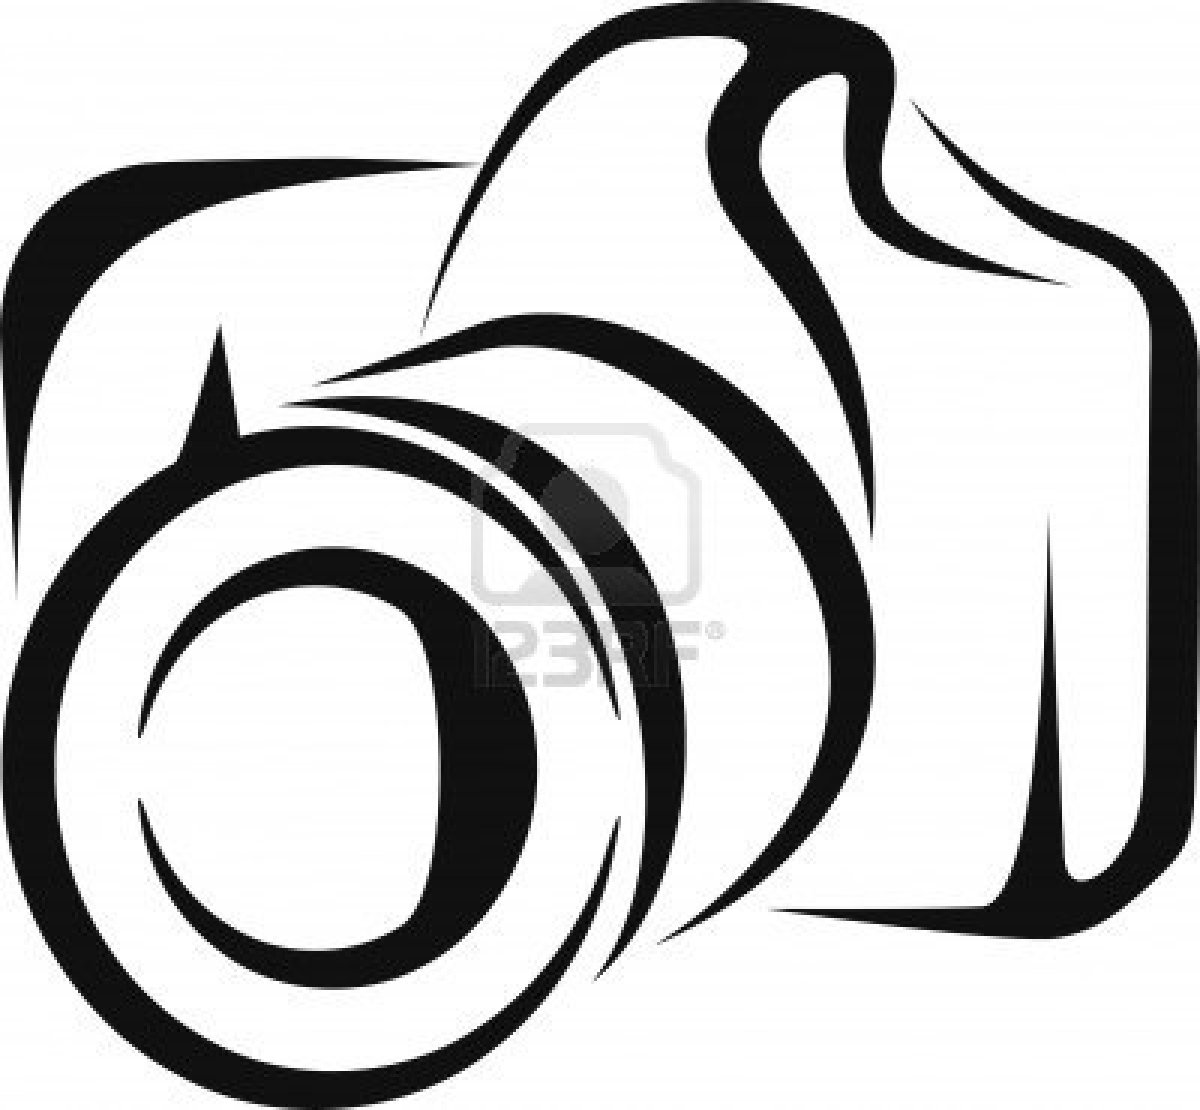 Dslr clipart black and white Camera Camera Panda collection Animation